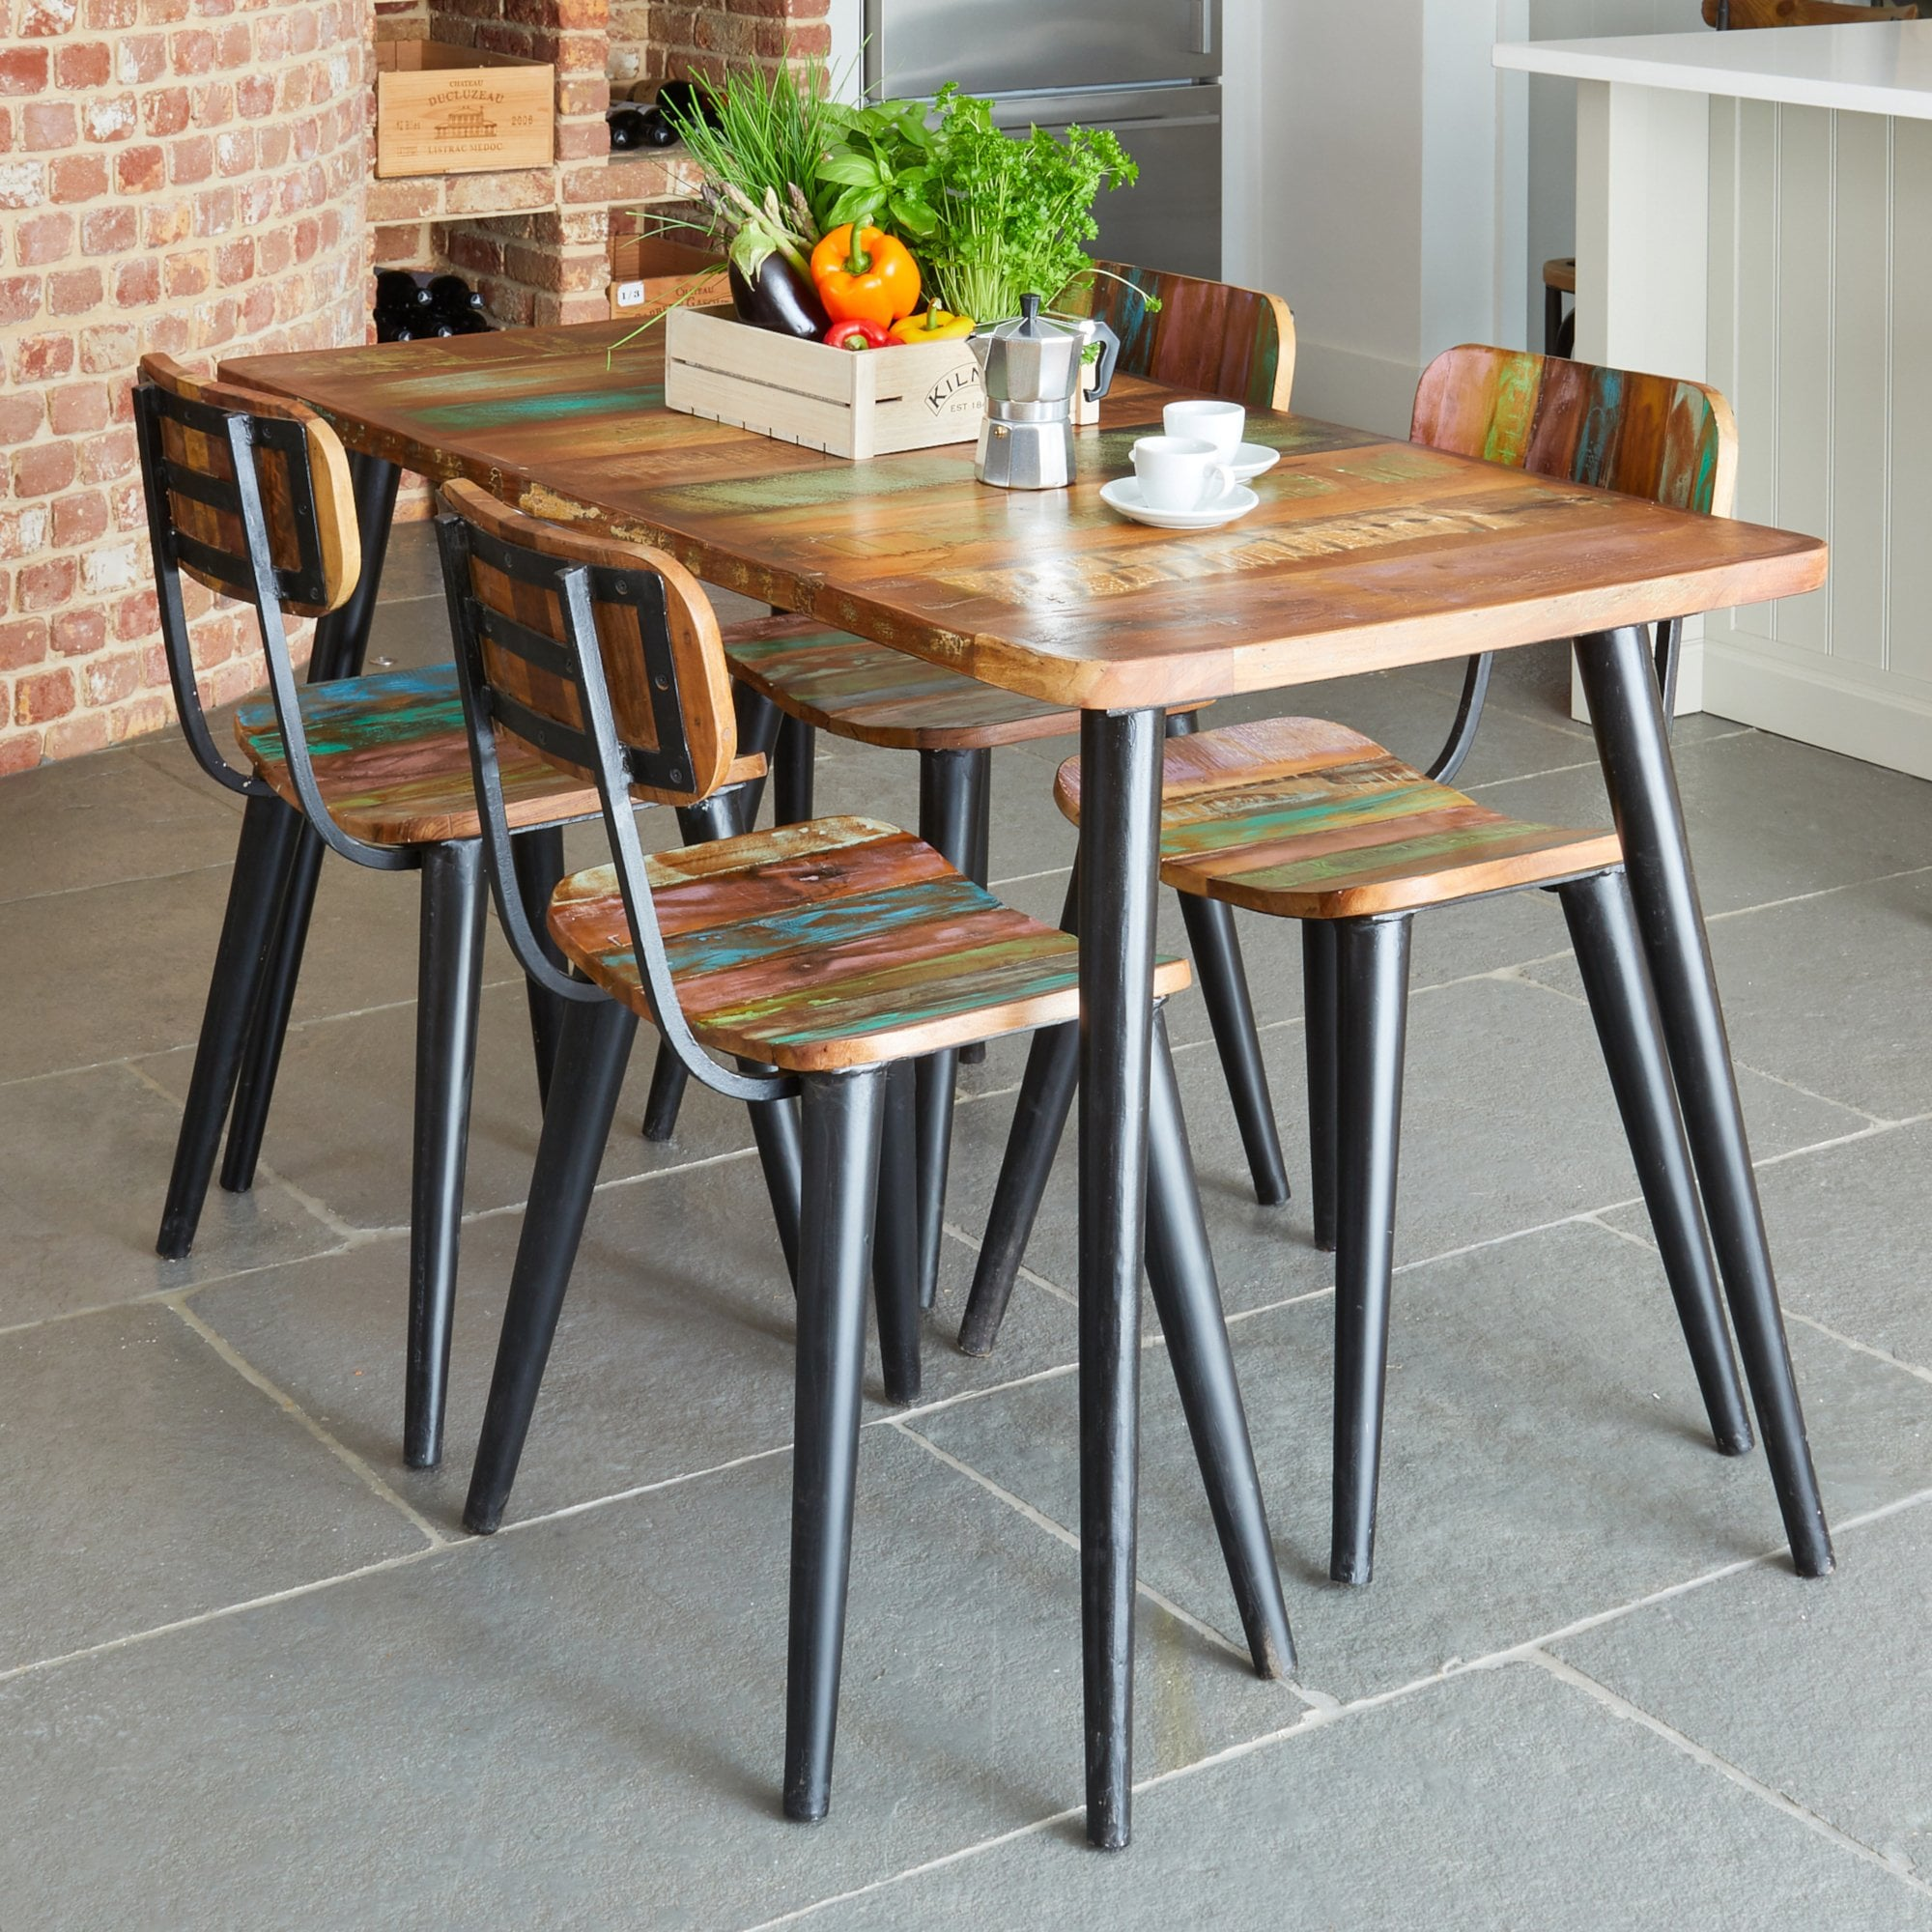 Picture of: Hugo Isaac Acaba Small Rectangular Dining Table Reclaimed Timber Leader Furniture